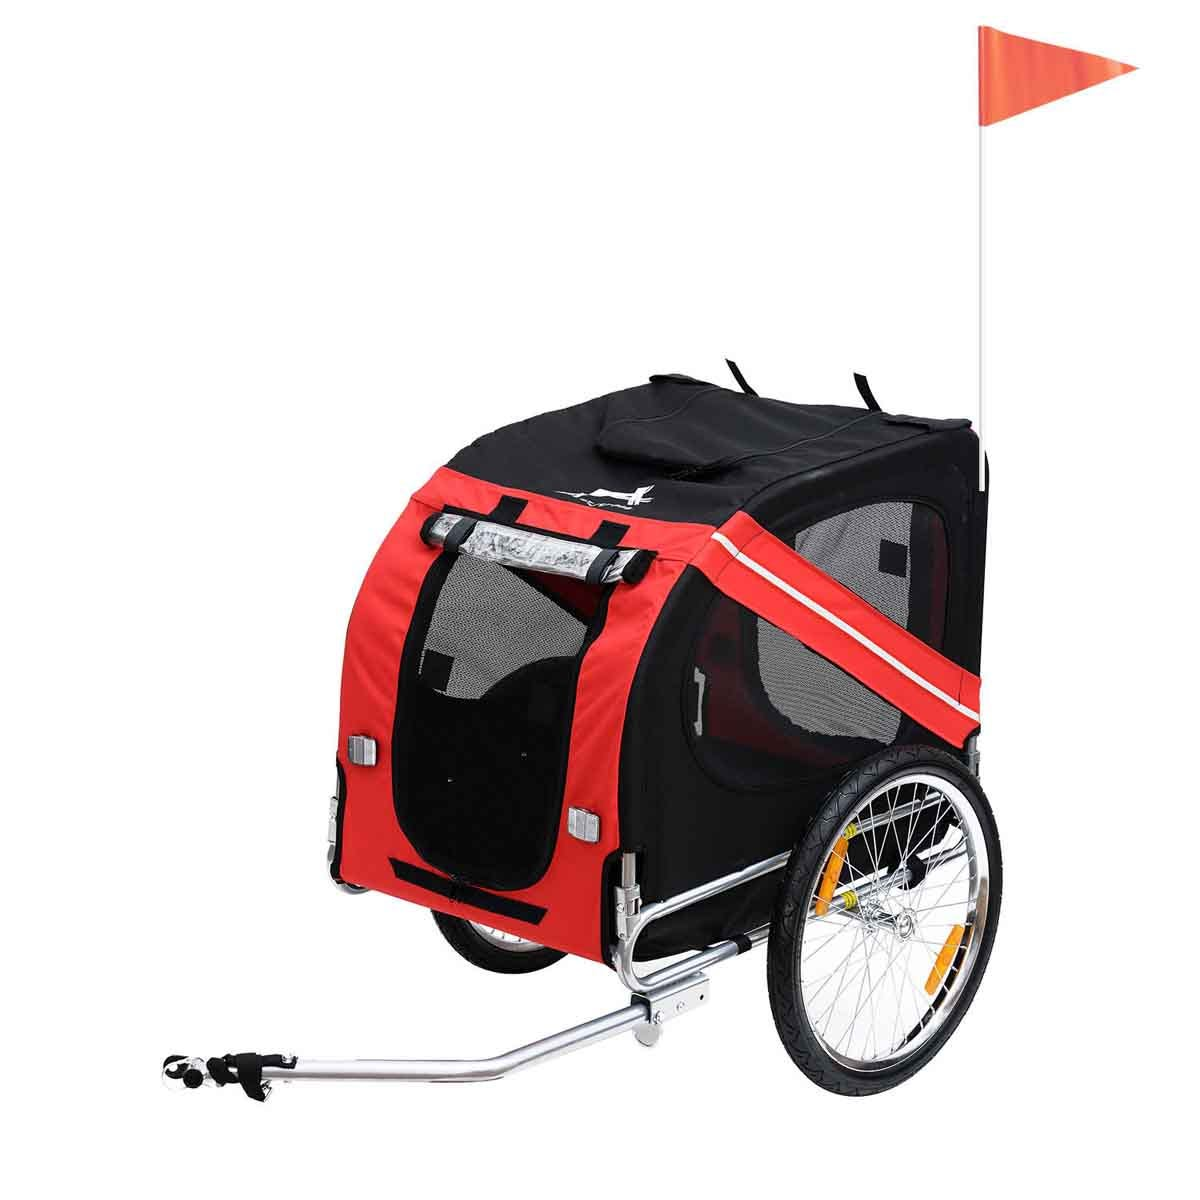 PawHut Bicycle Pet Trailer Dog W/ Folding Stroller & Carrier Cycle Luggage - Red&Black